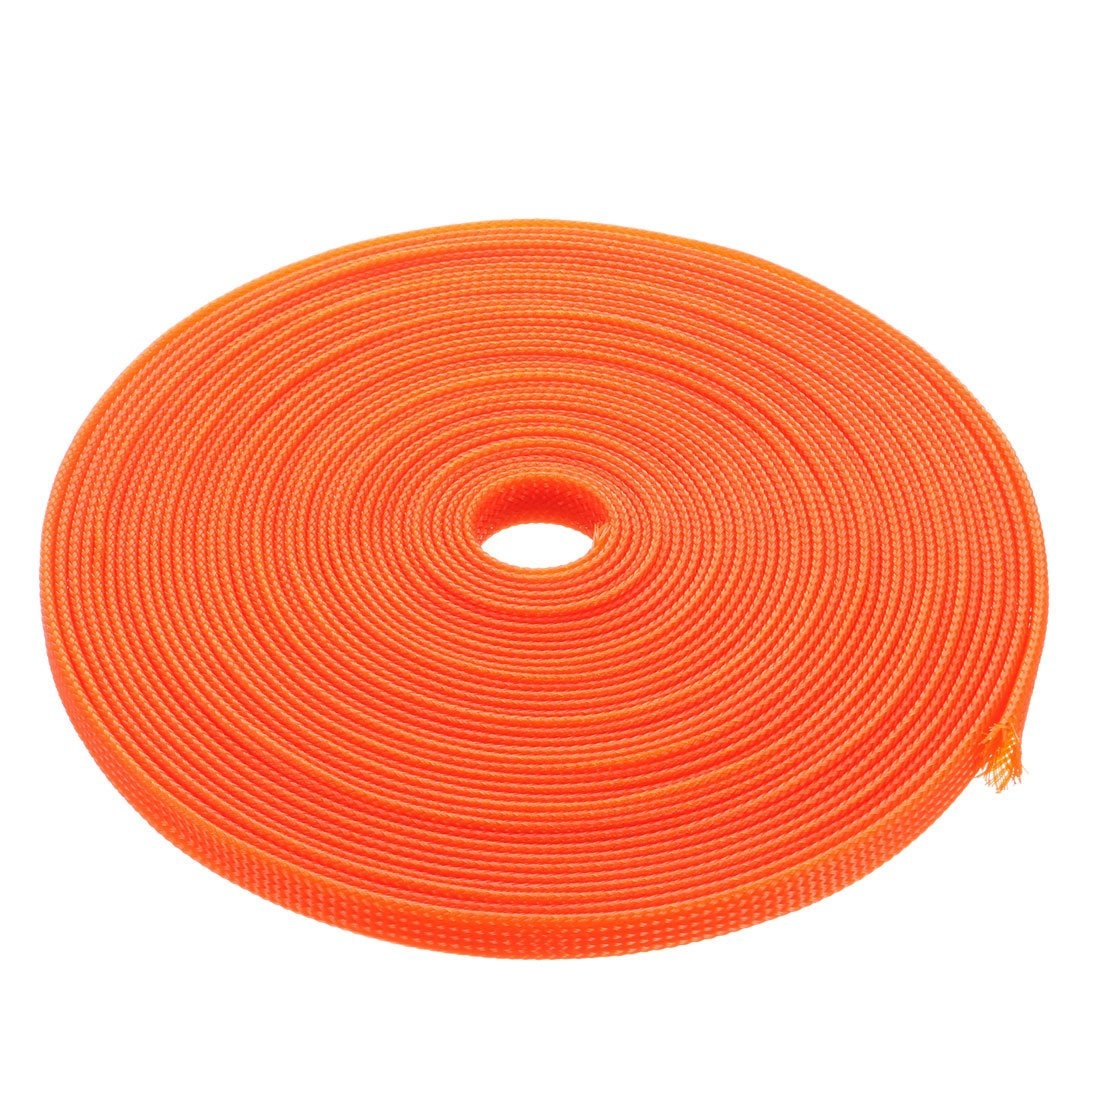 uxcell PET Braided Sleeving 32.8 Feet 10m Expandable Cable Wrap 4mm Diameter Wire Sheath Orange